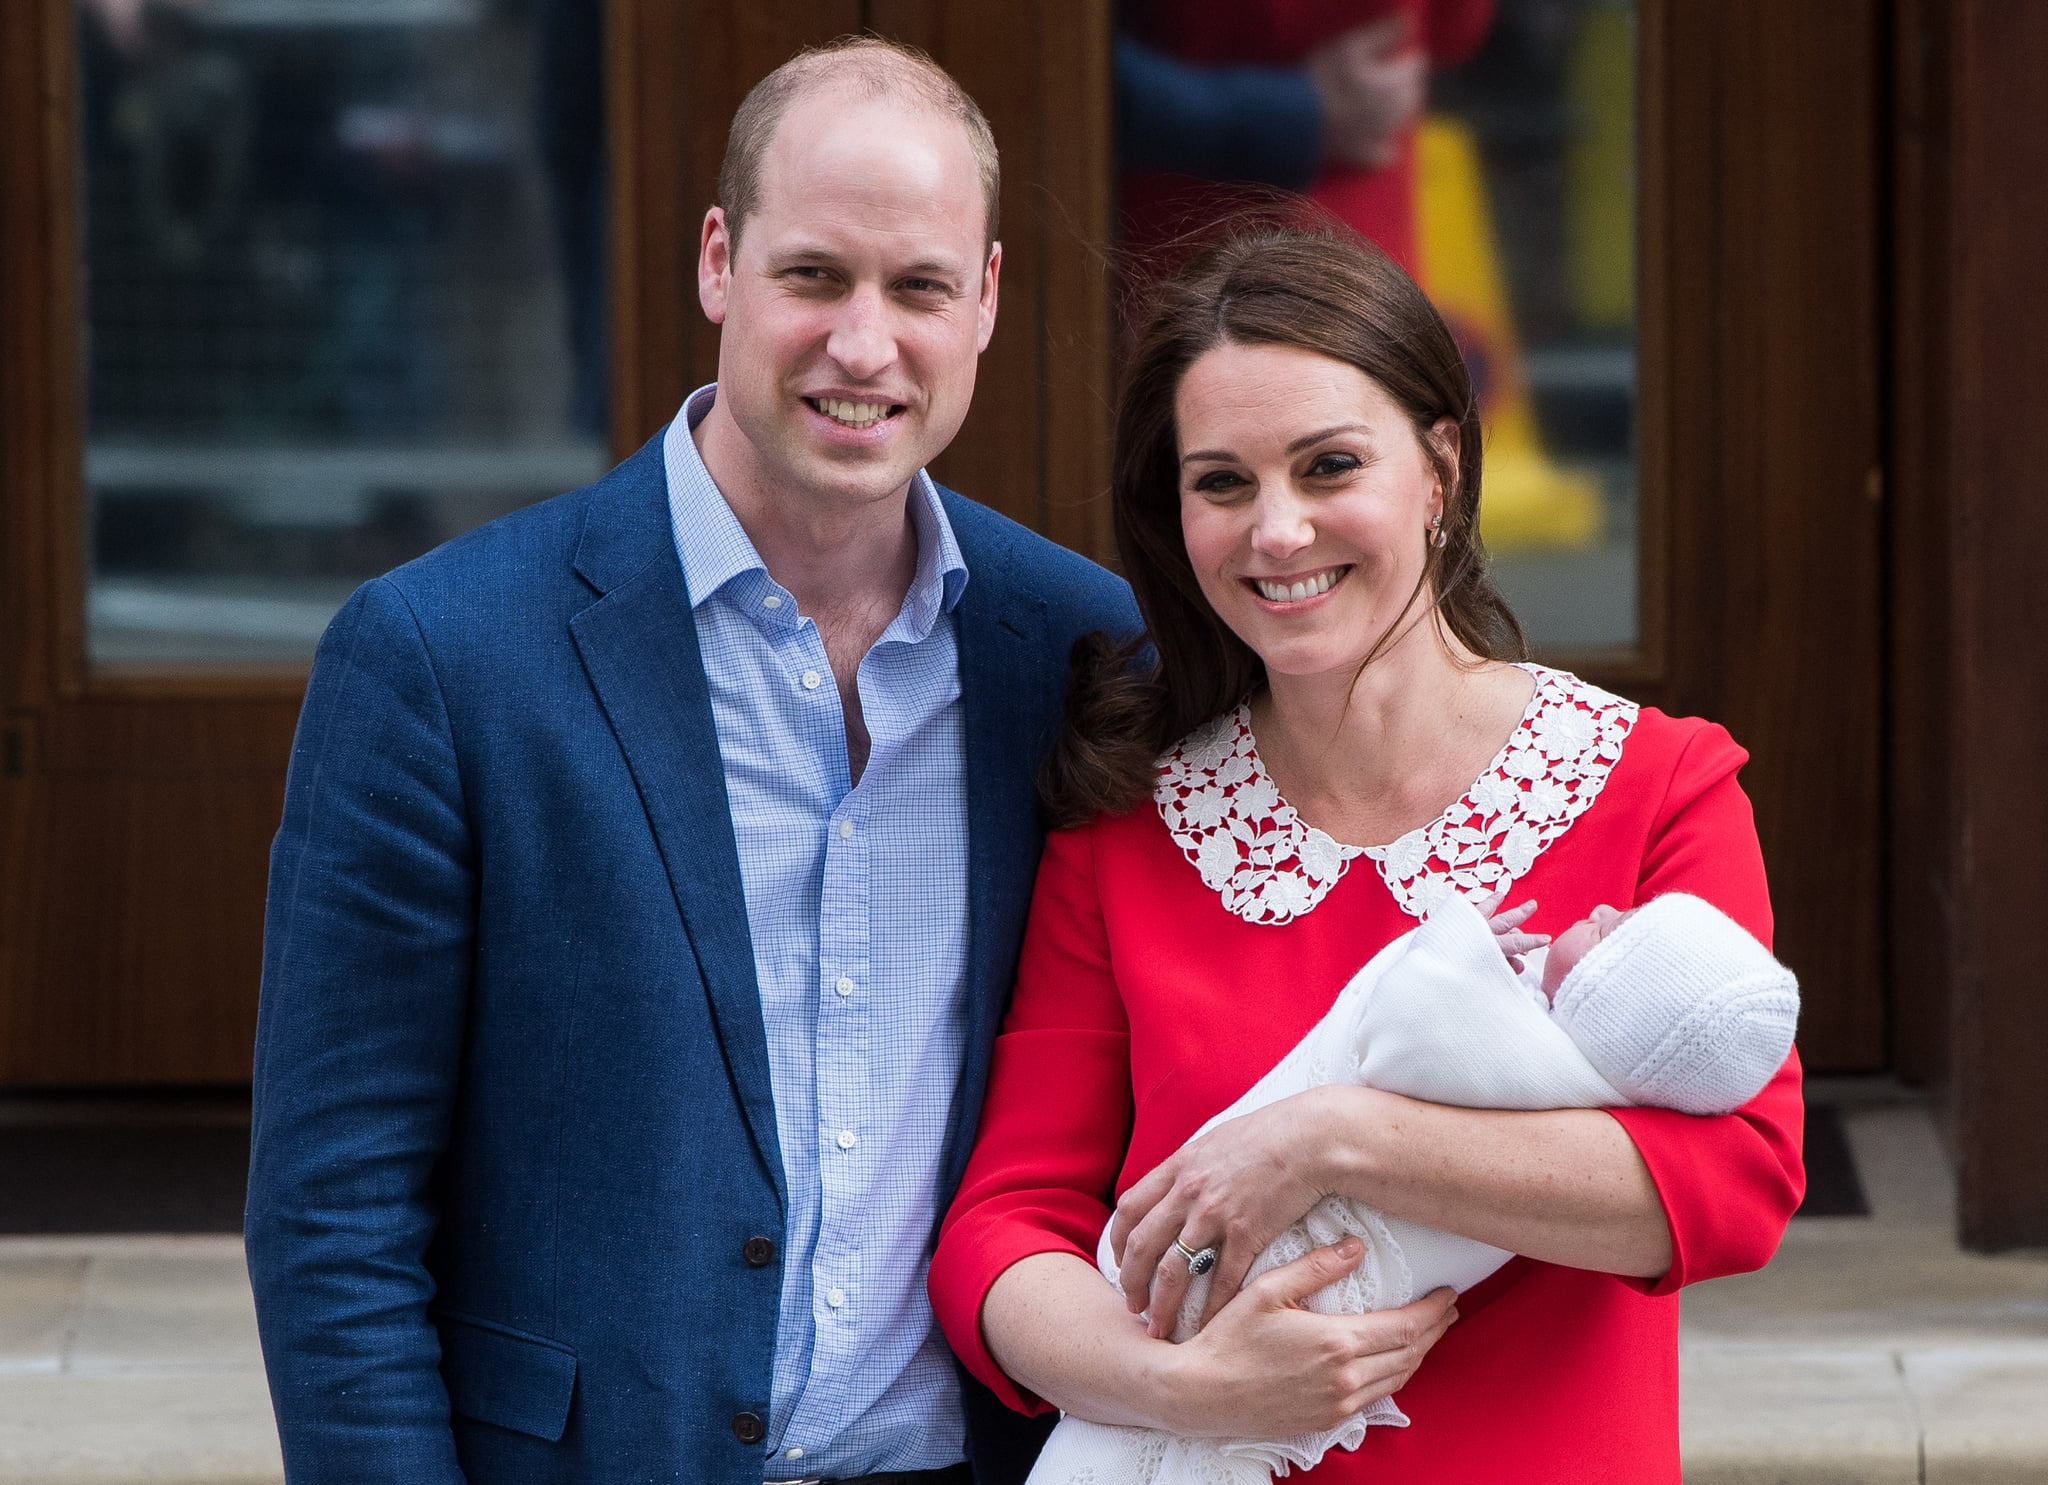 LONDON, ENGLAND - APRIL 23:  Catherine, Duchess of Cambridge and Prince William, Duke of Cambridge depart the Lindo Wing with their newborn son Prince Louis of Cambridge at St Mary's Hospital on April 23, 2018 in London, England. The Duchess safely delivered a son at 11:01 am, weighing 8lbs 7oz, who will be fifth in line to the throne.  (Photo by Samir Hussein/WireImage)